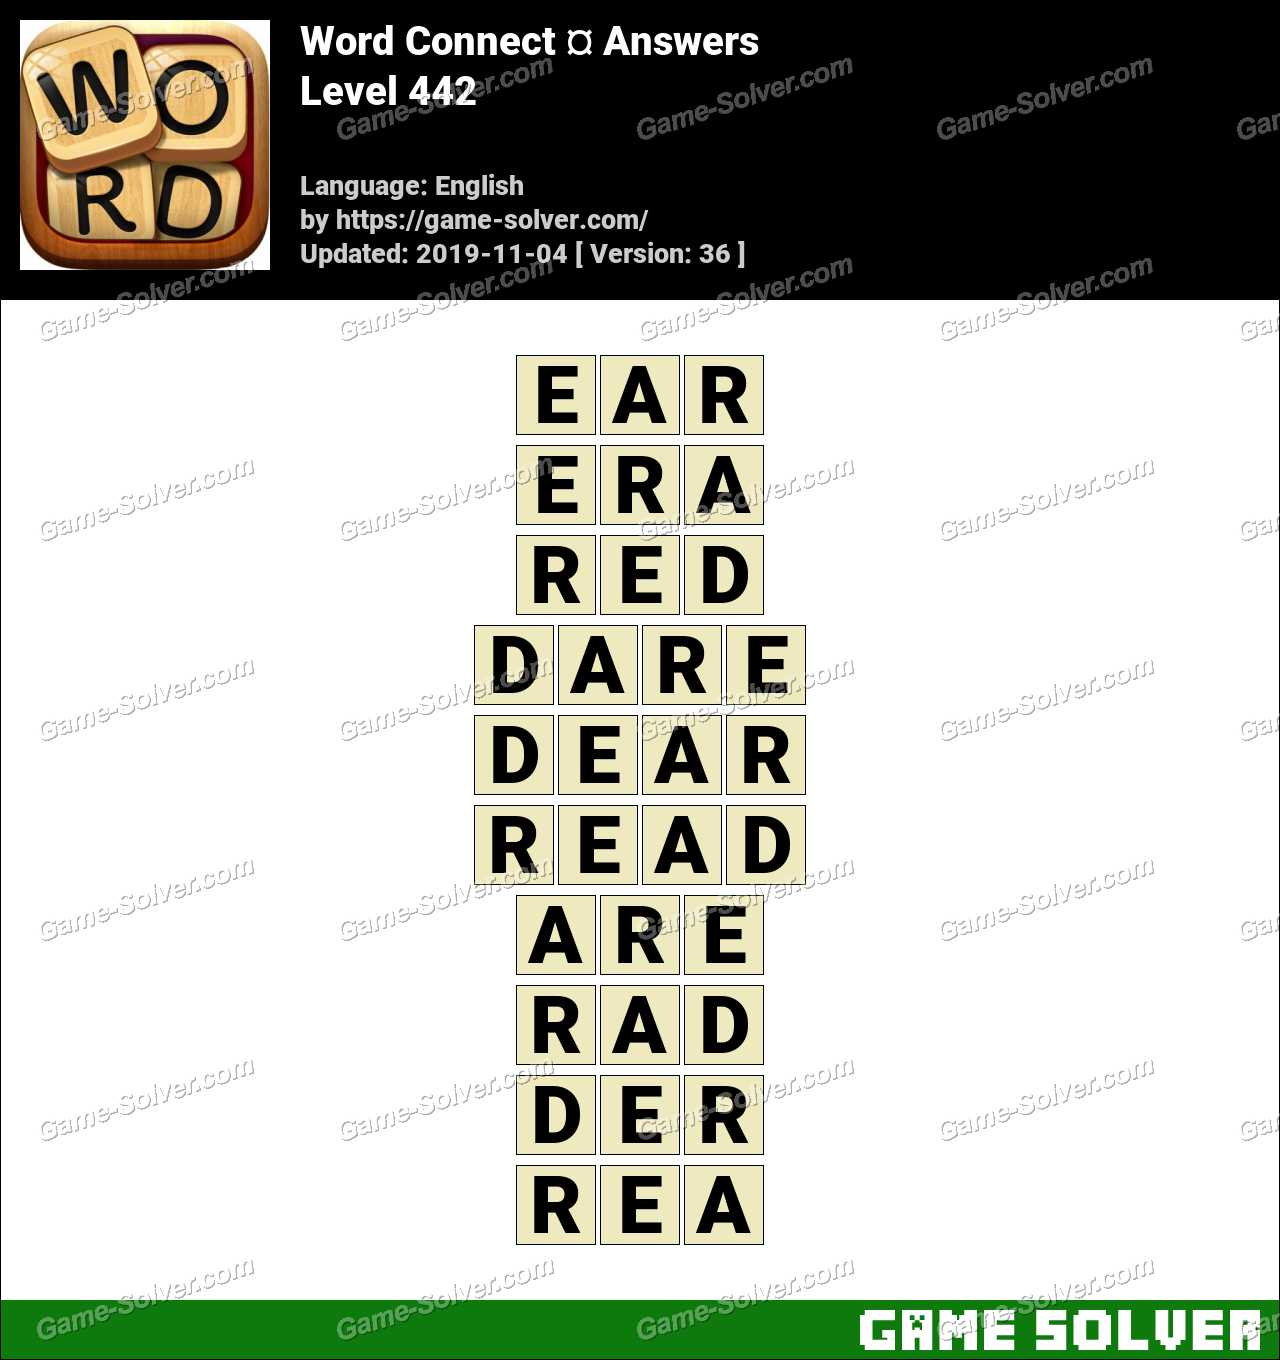 Word Connect Level 442 Answers